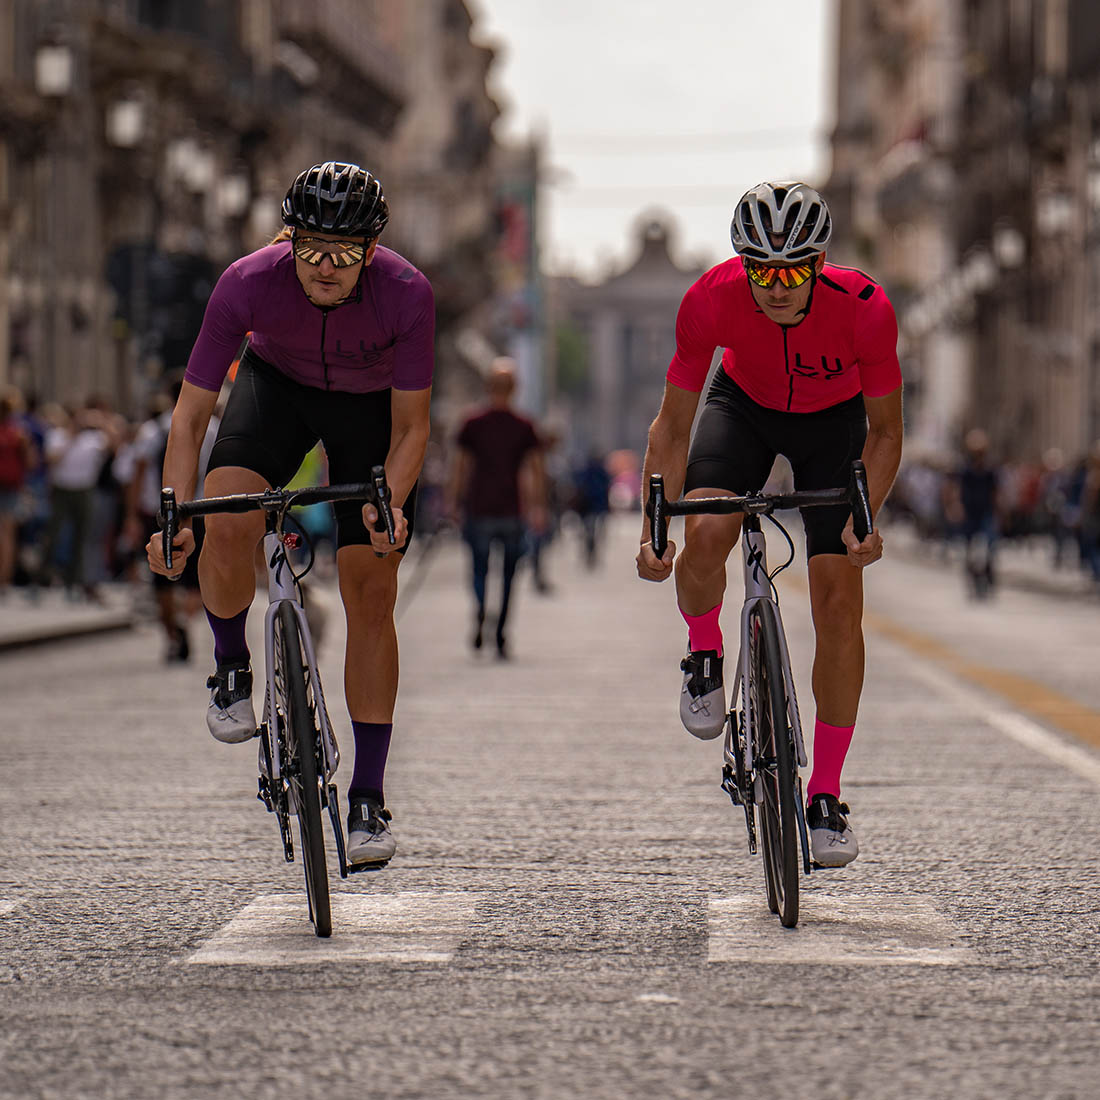 road cycling kit tested in Sicily (Catania) before giro d'italia stage